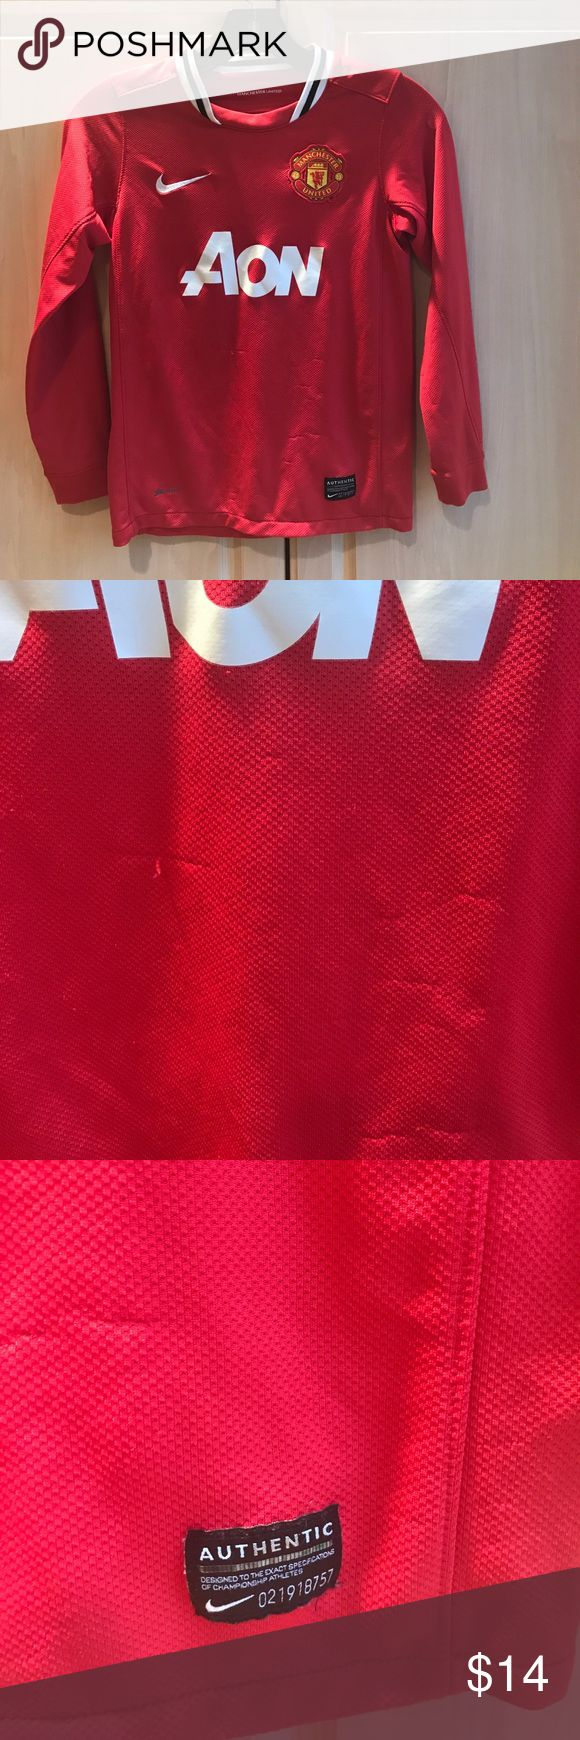 ⚽️⚽️NIKE MANCHESTER UNITED ⚽️⚽️CHILDS SHIRT Dri fit child's small would fit approx size 7-8. Pulling in front of shirt. See photo 2. Nike Shirts & Tops Tees - Long Sleeve